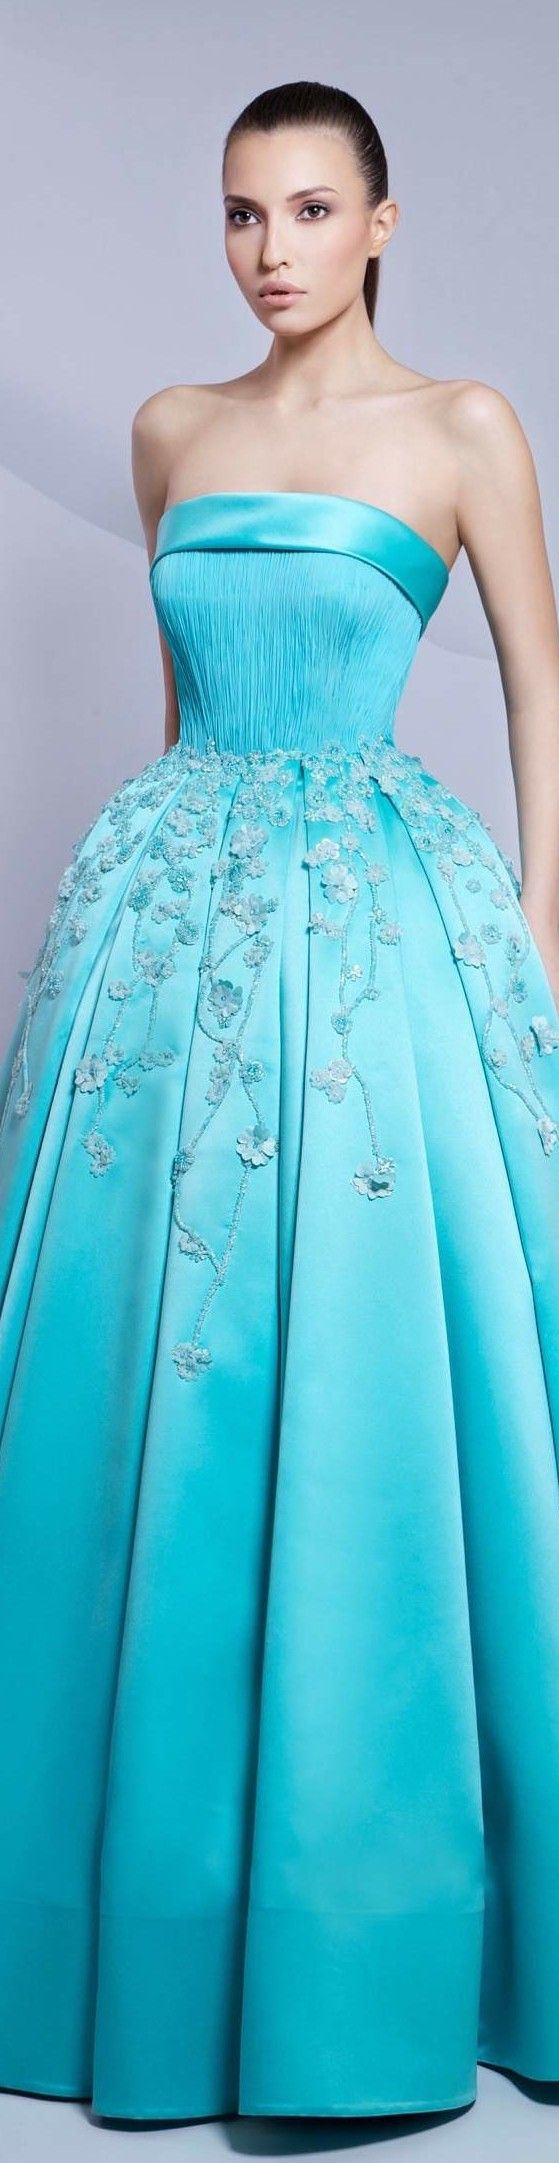 279 best haute images on Pinterest | High fashion, Classy dress and ...